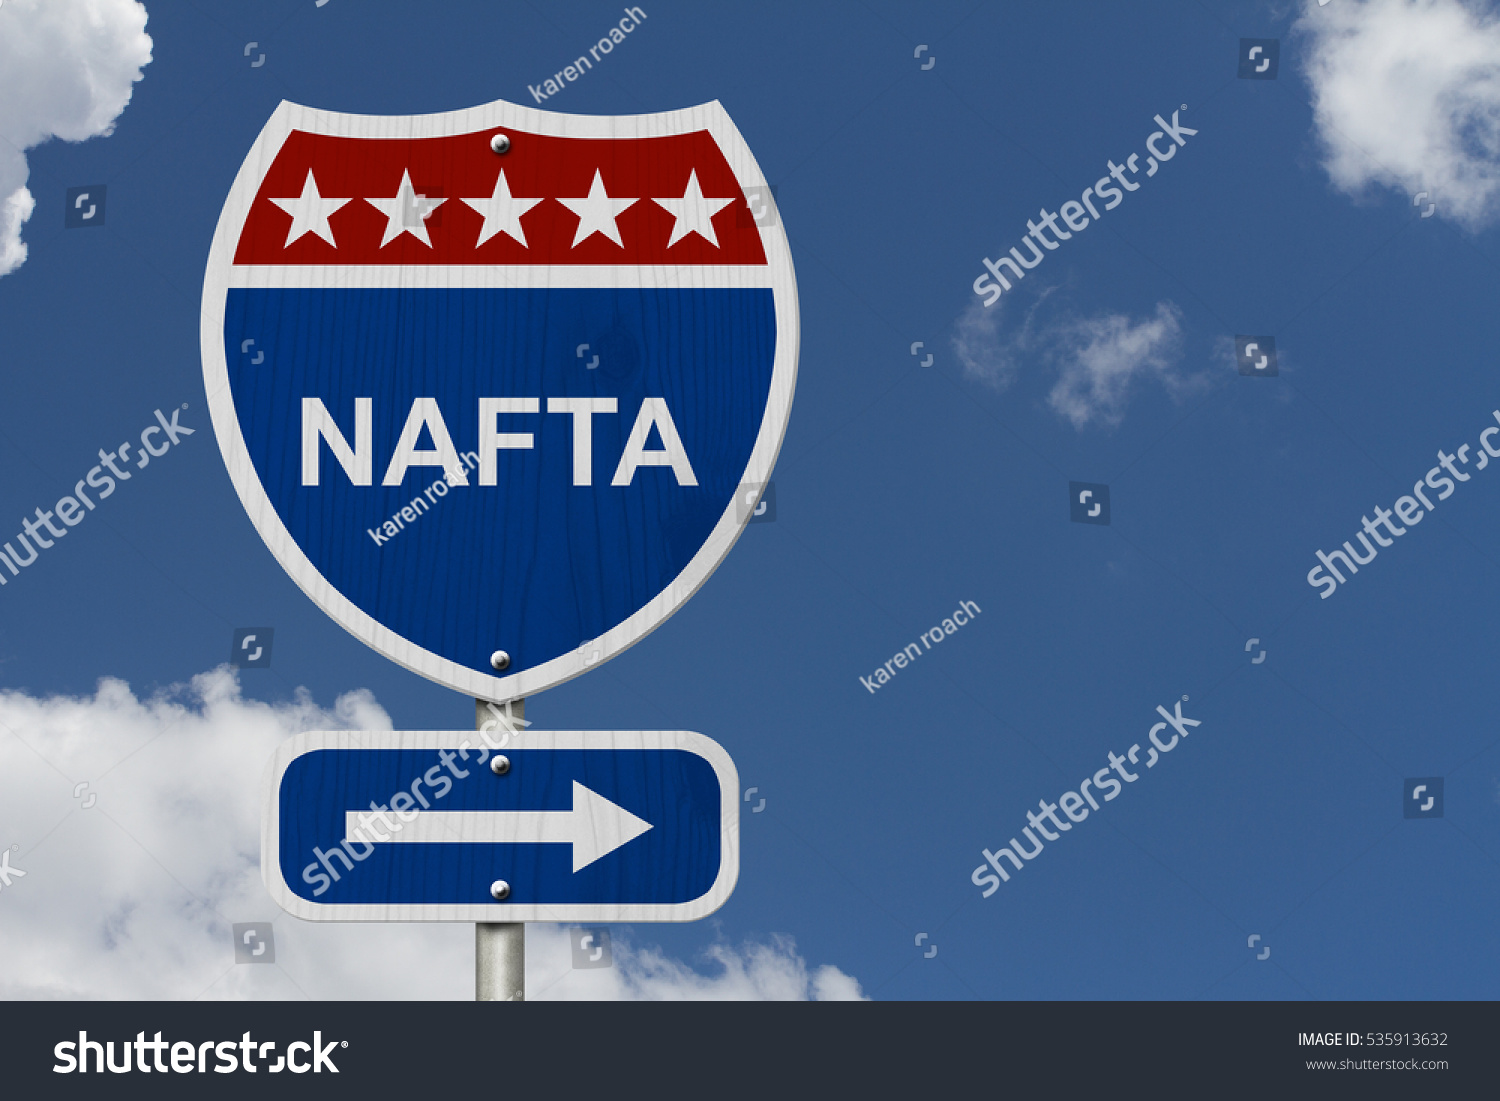 North american free trade agreement sign stock illustration north american free trade agreement sign red white and blue interstate highway road sign sciox Images